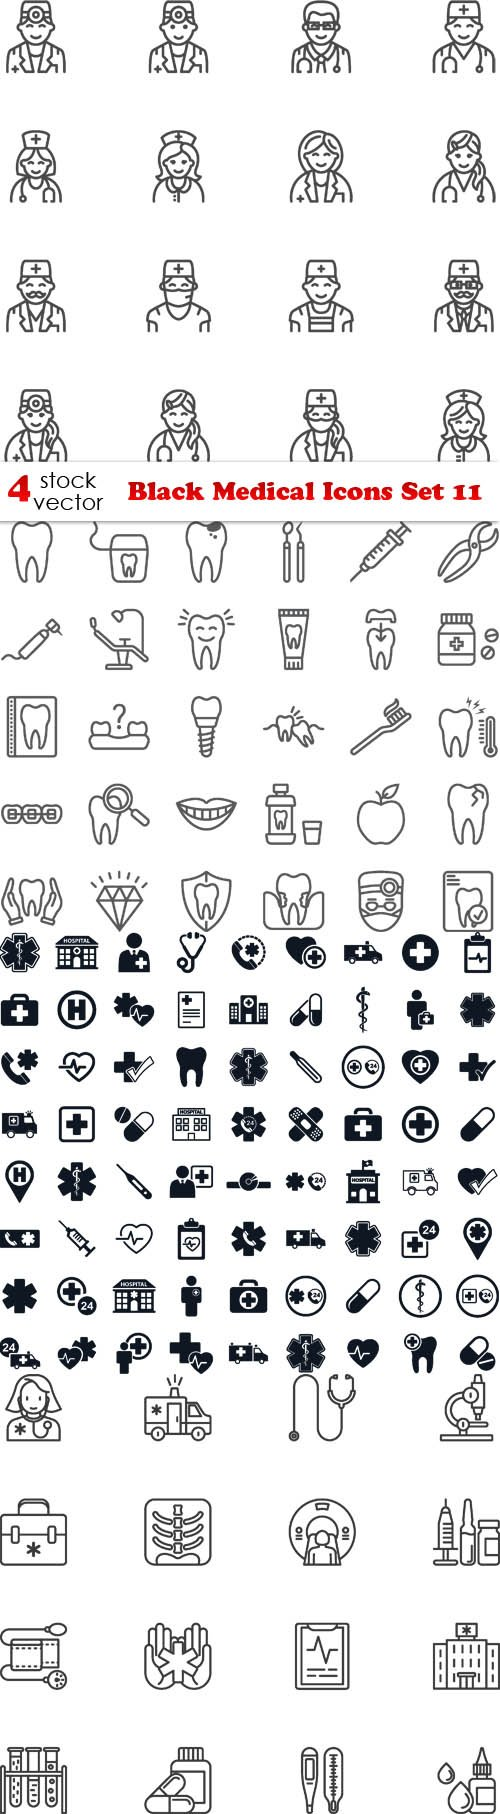 Vectors - Black Medical Icons Set 11